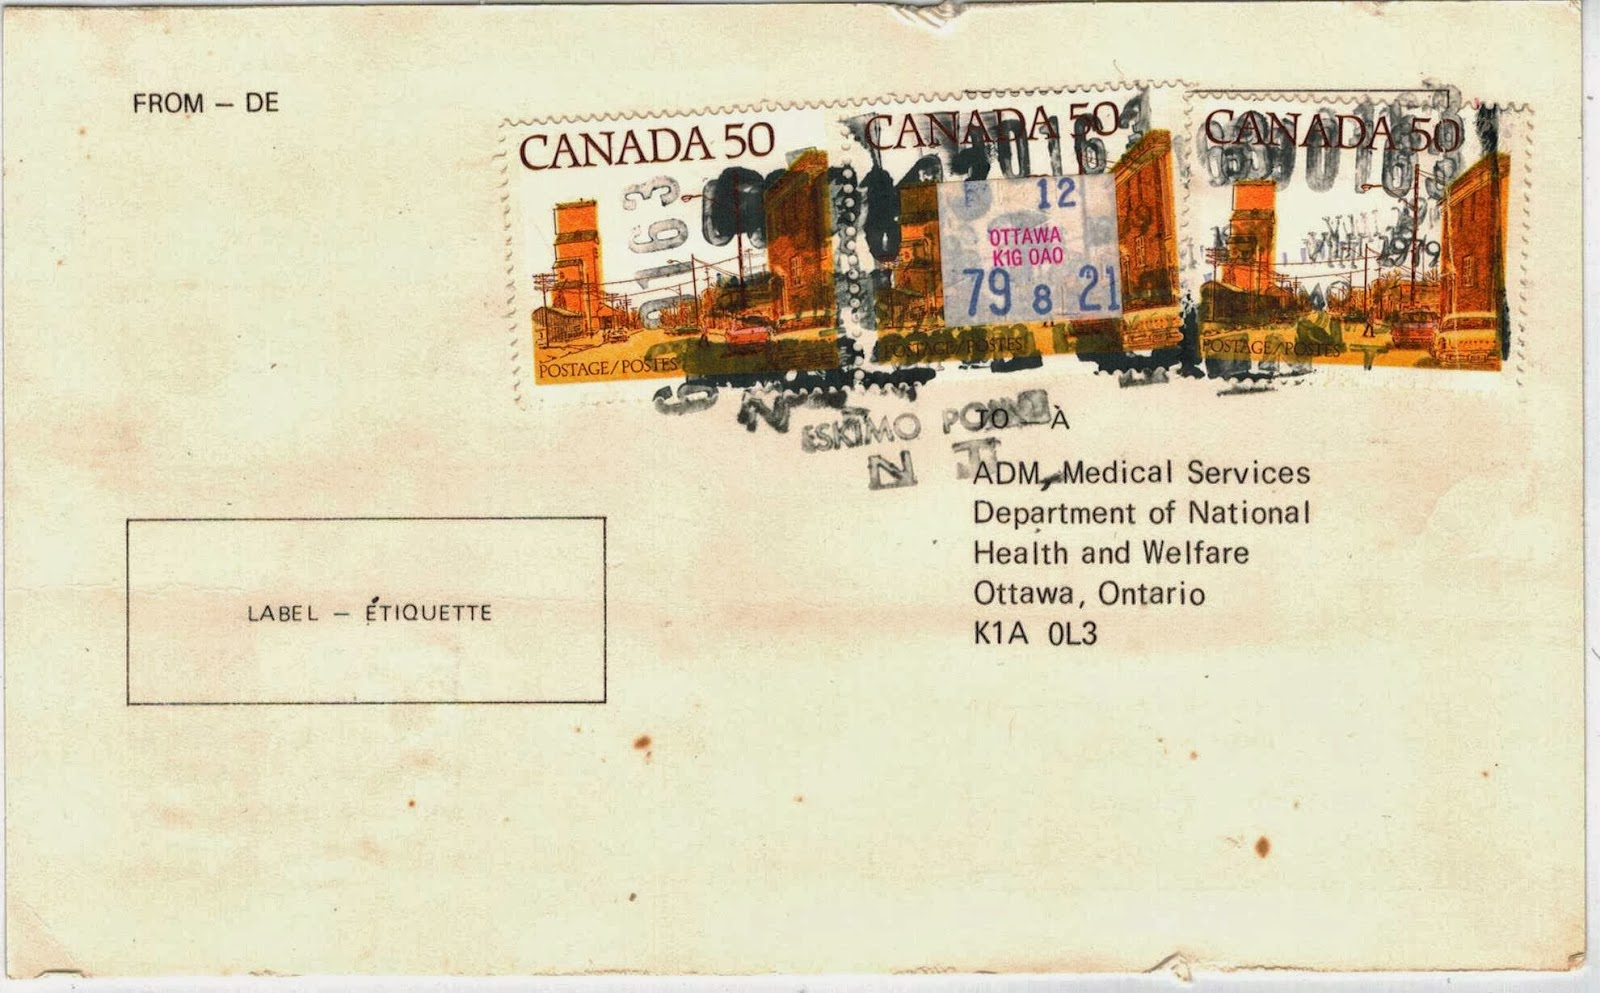 ... Letter To Canada Postage. View Original . [Updated on 01/20/2016 at 06